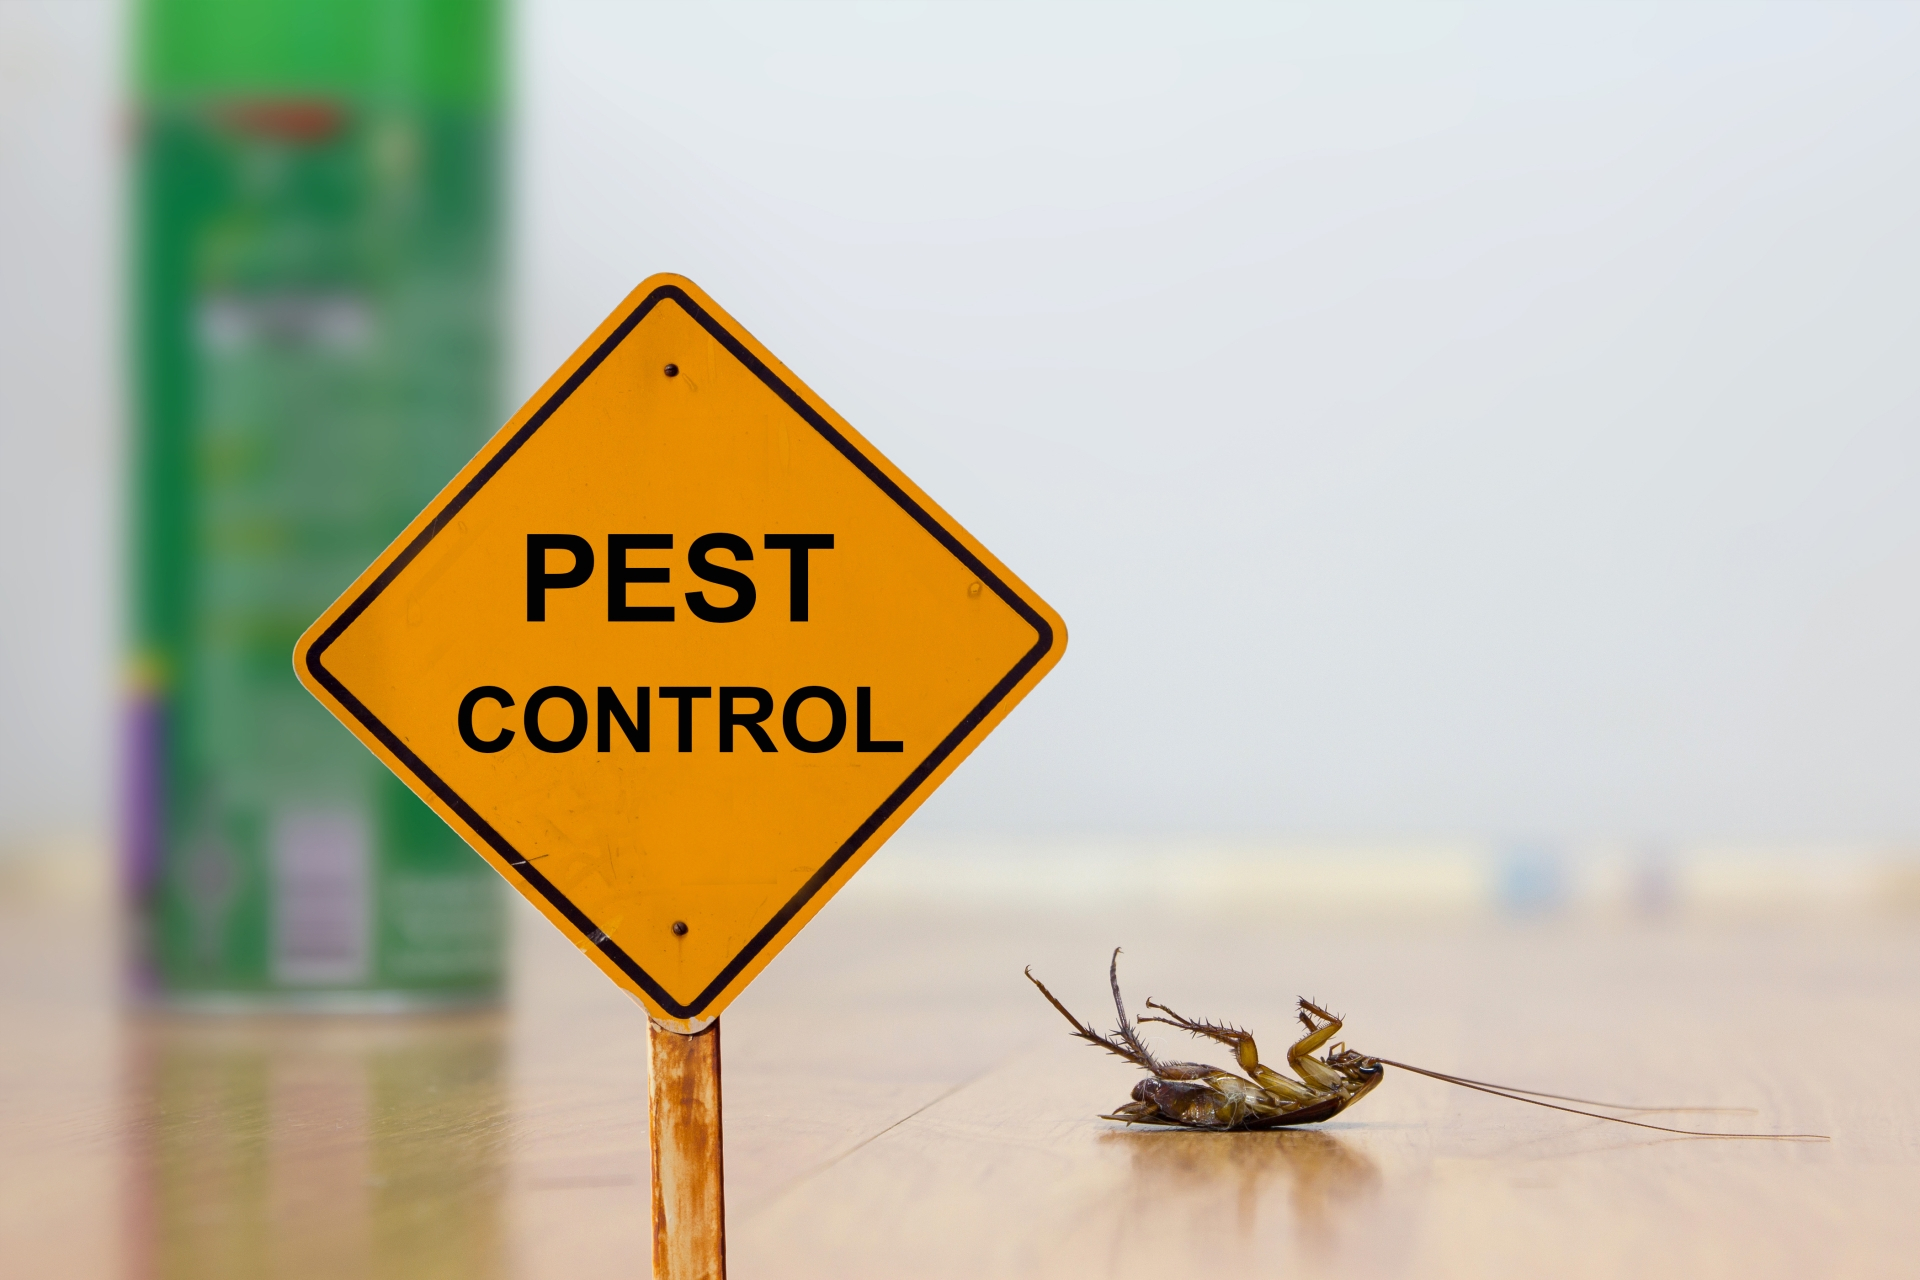 24 Hour Pest Control, Pest Control in Kew, North Sheen, TW9. Call Now 020 8166 9746